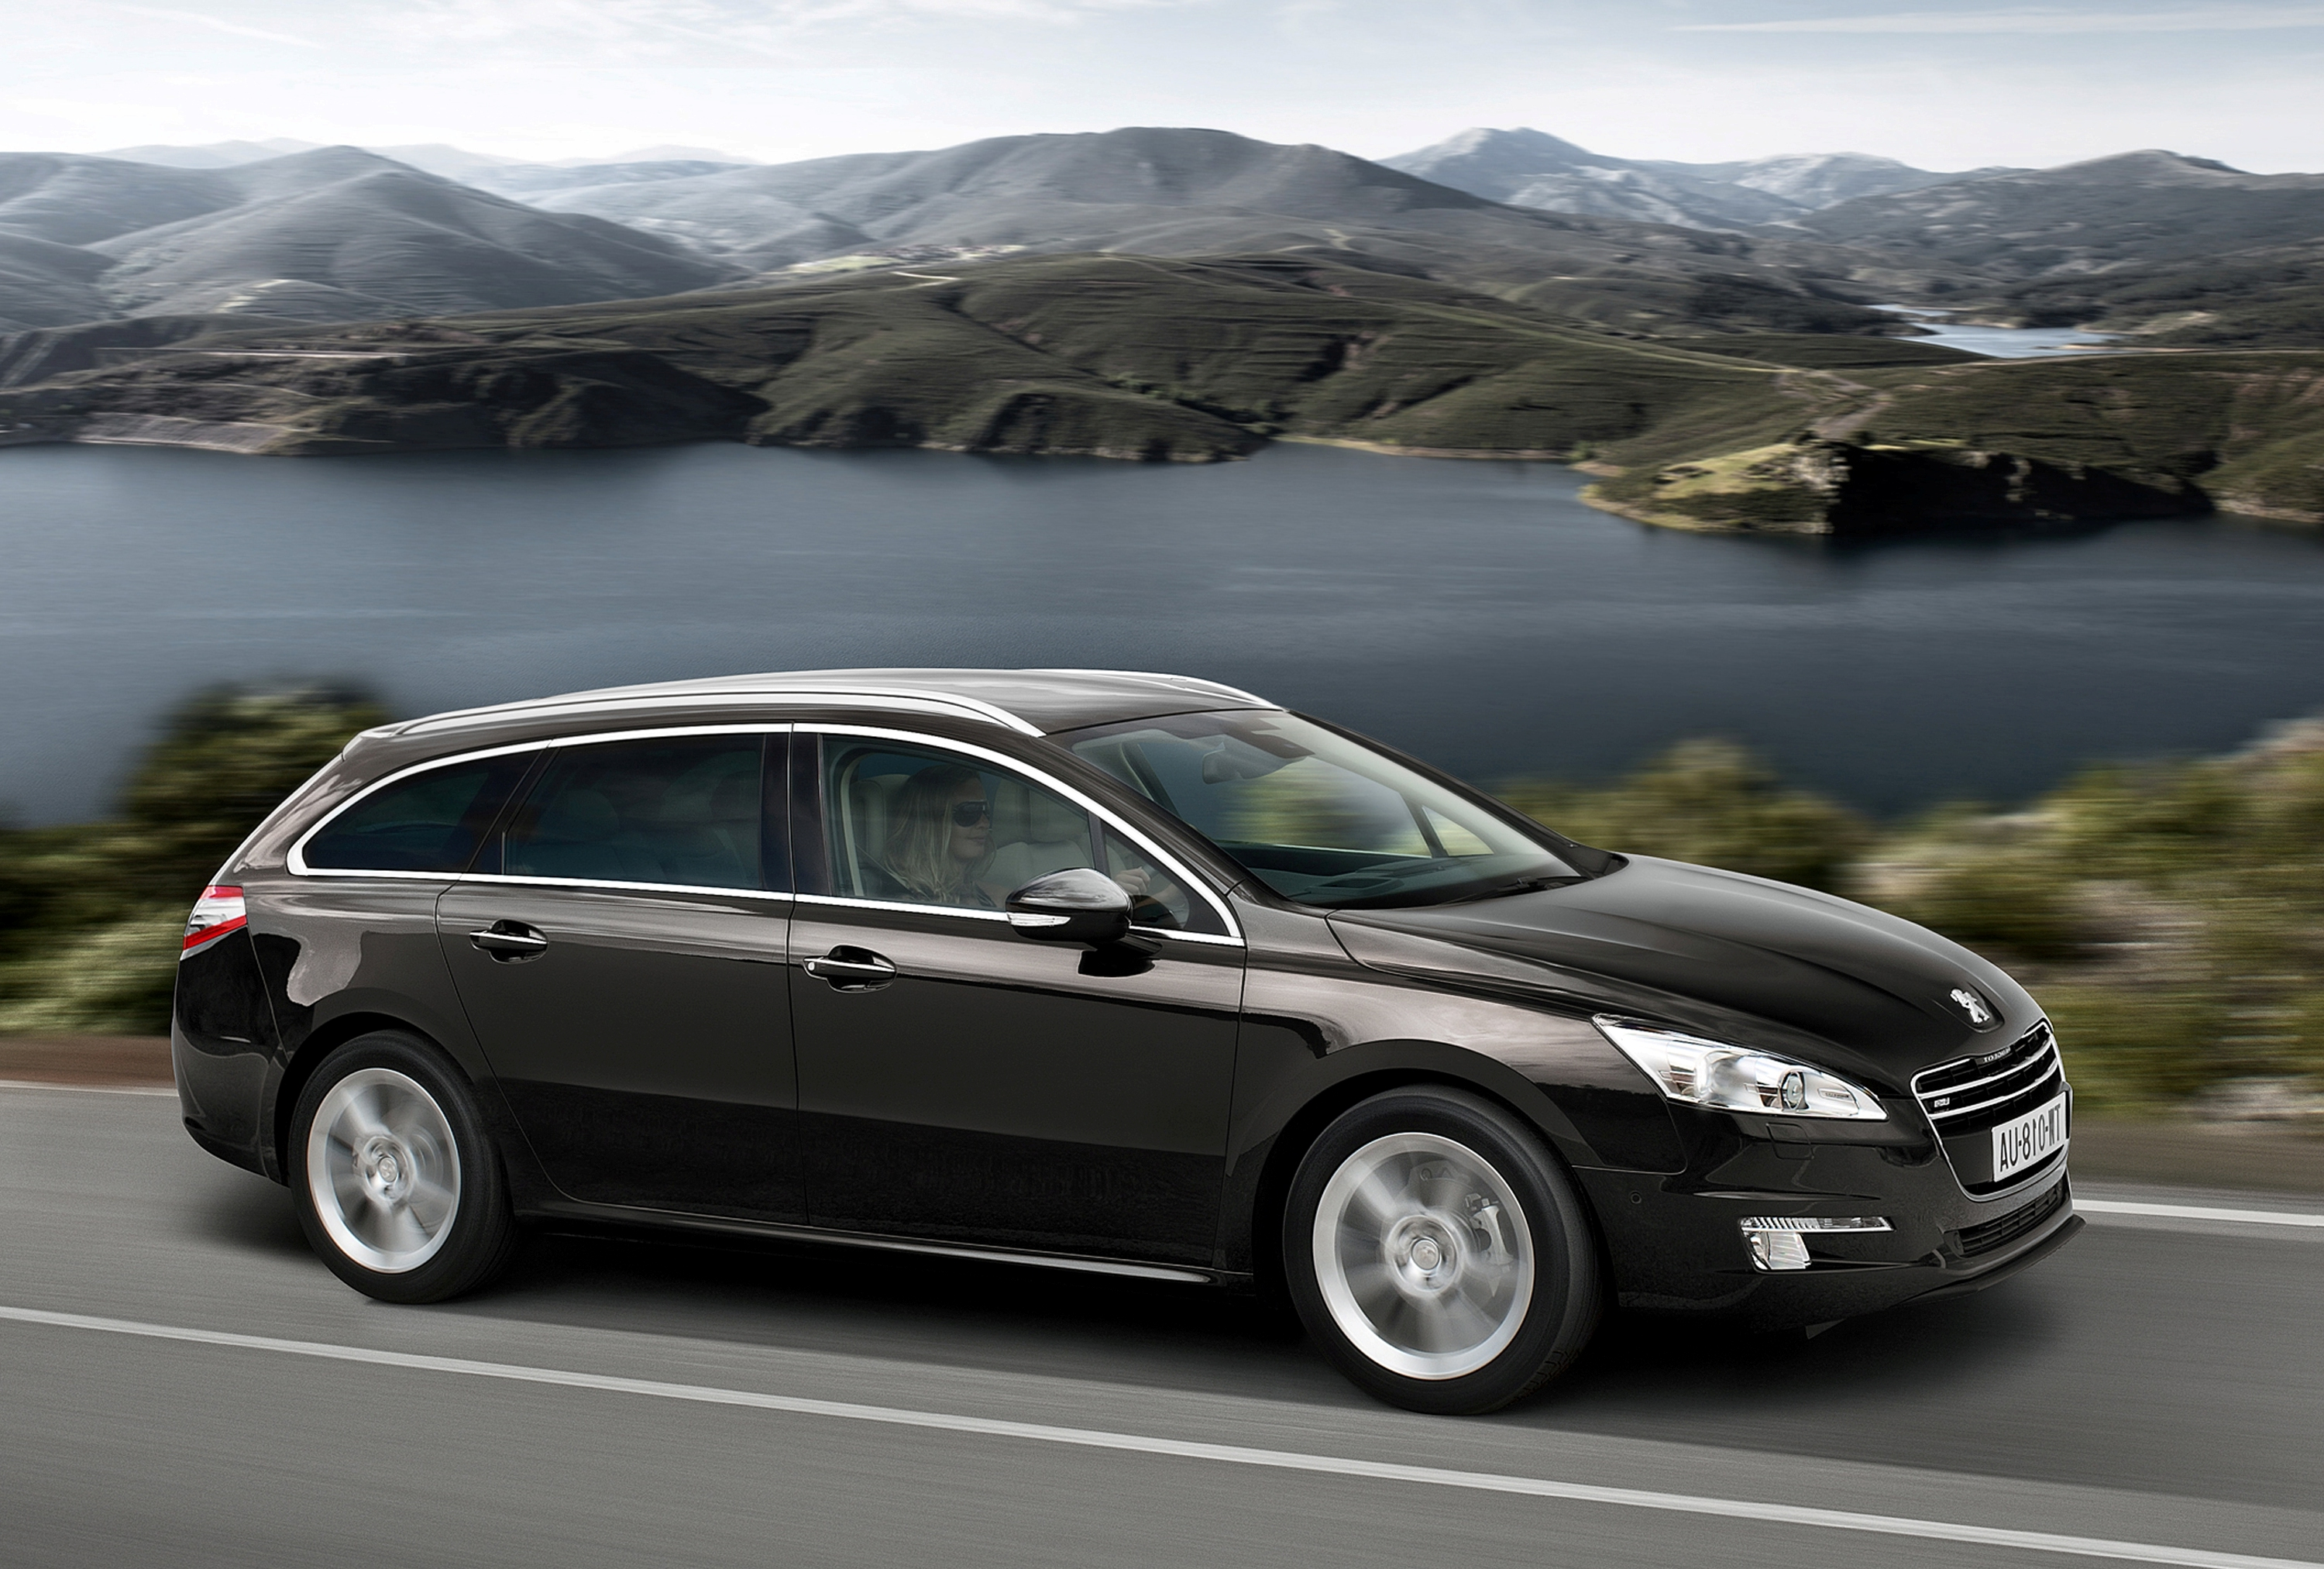 peugeot 508 sw active hdi 163 car write ups. Black Bedroom Furniture Sets. Home Design Ideas